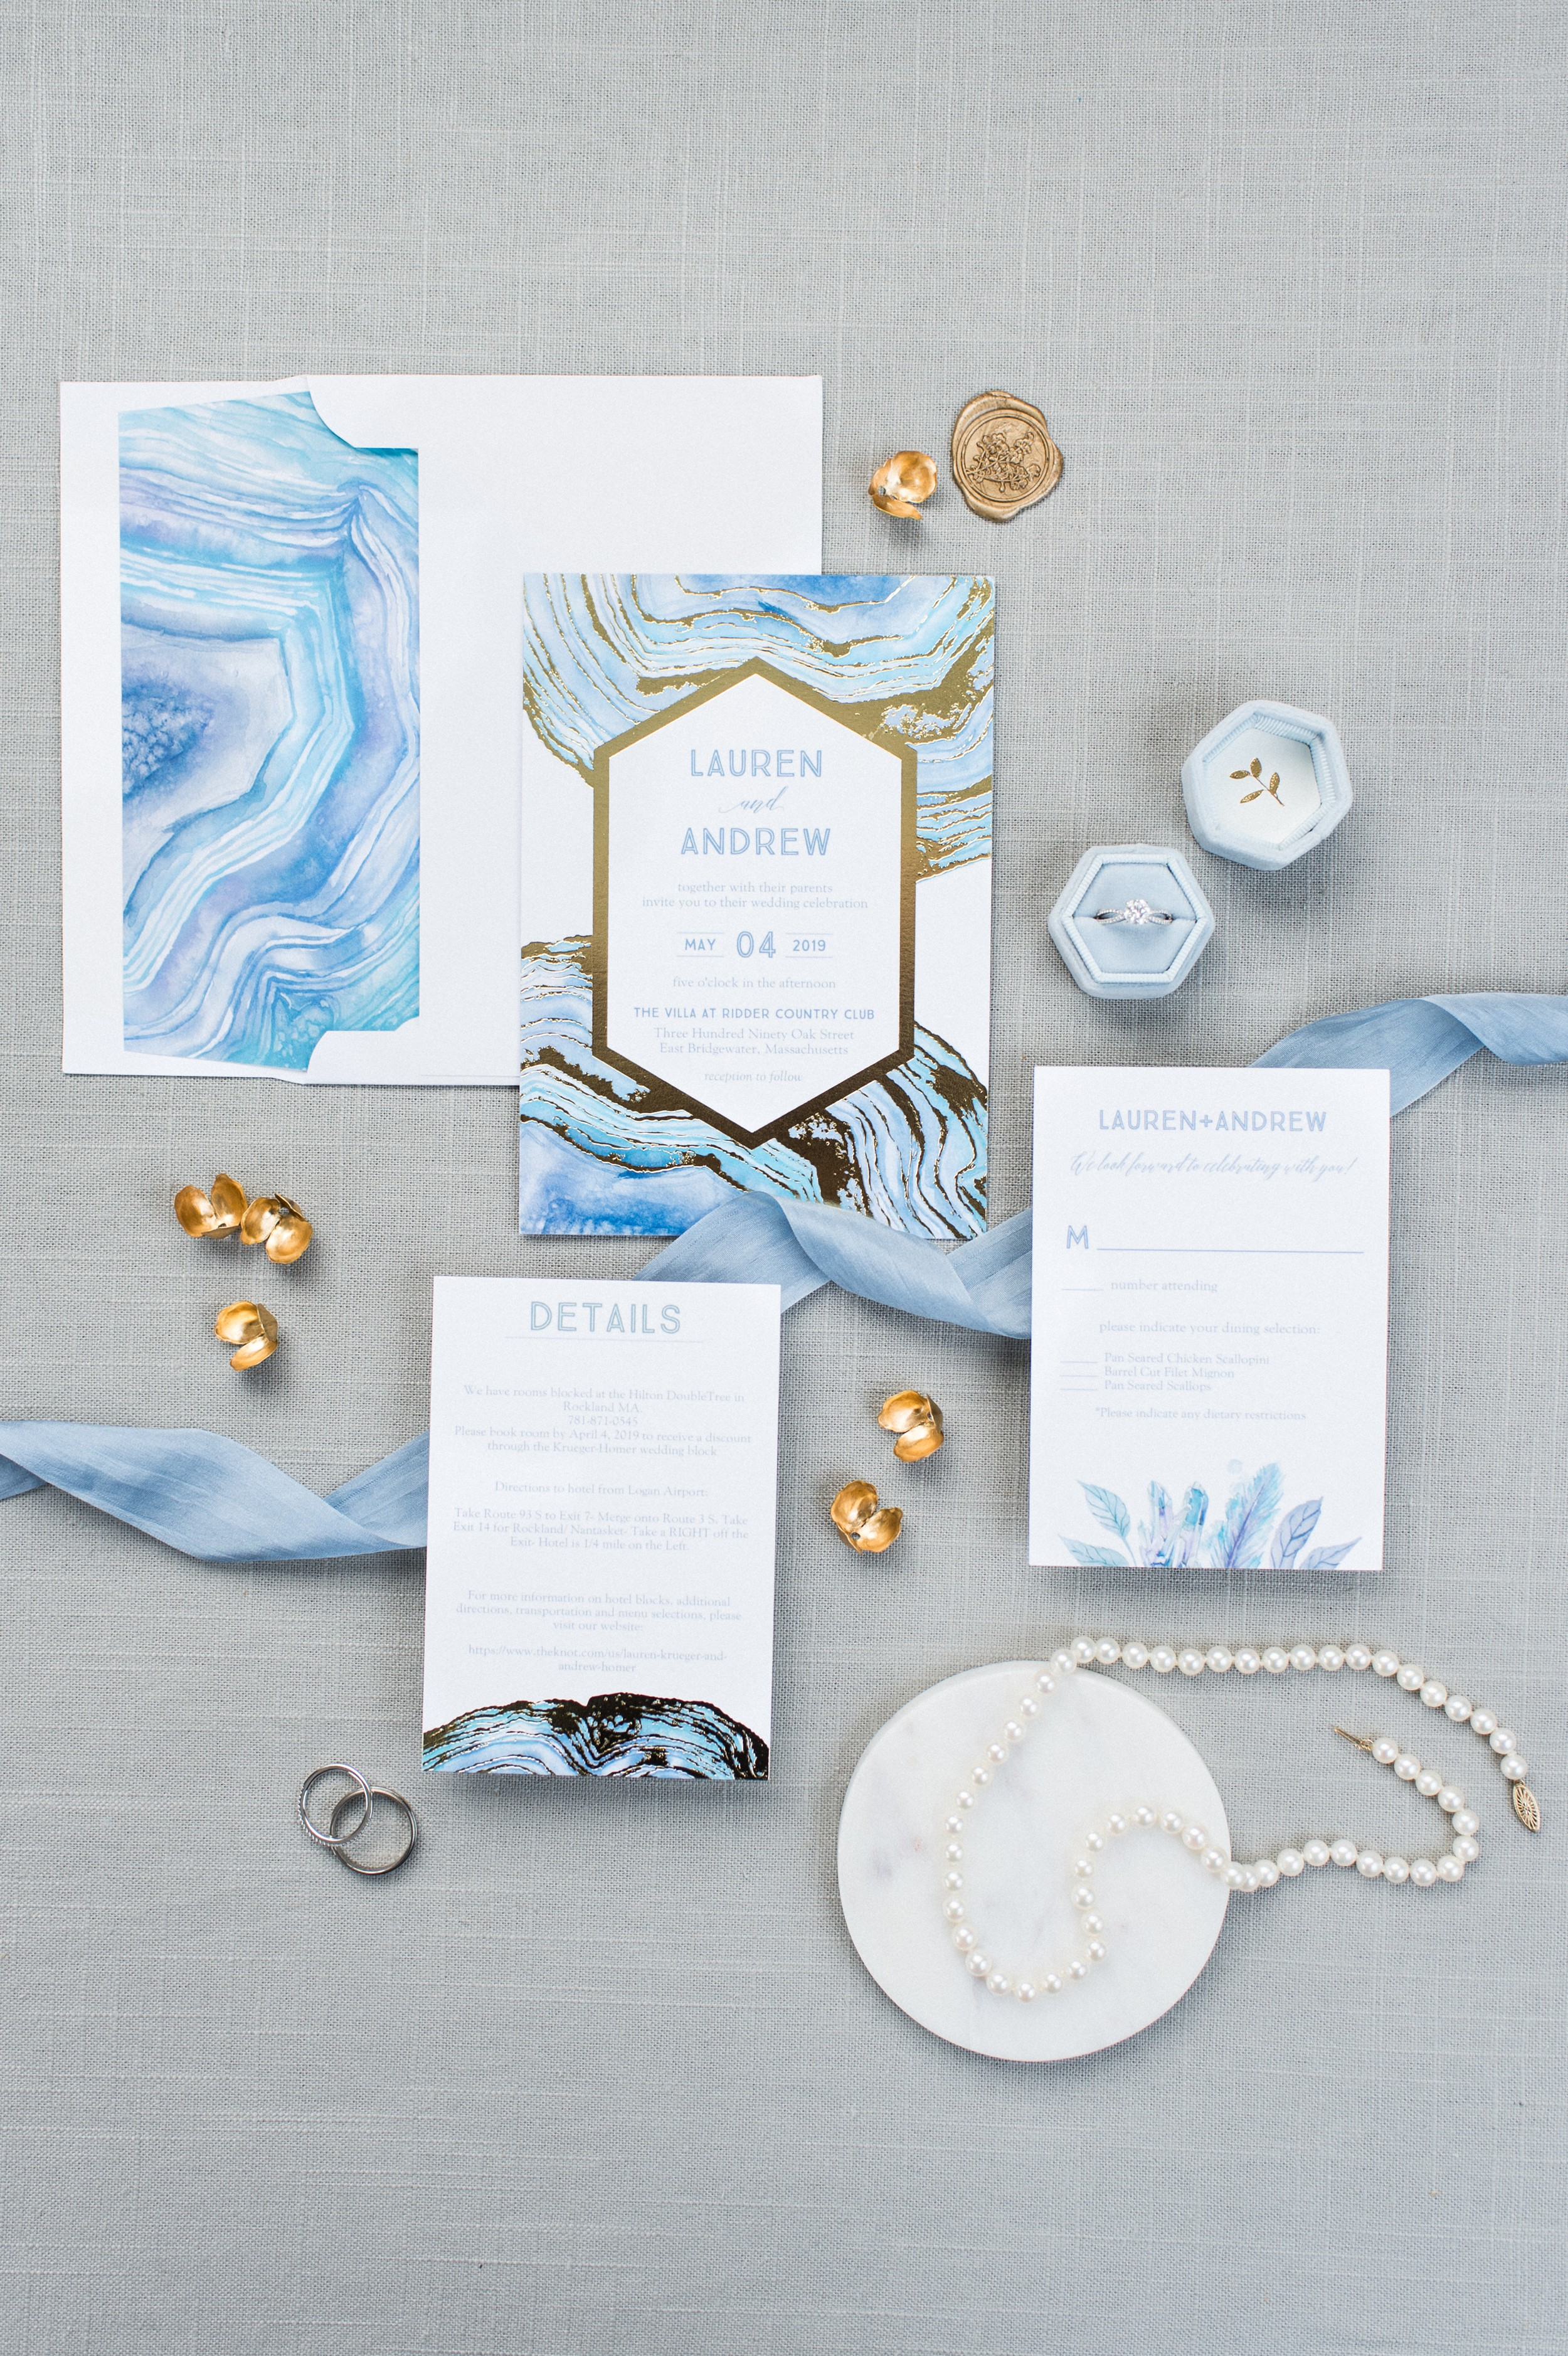 The Villa at Ridder Country Club Spring Wedding East Bridgewater MA bridal details flat lay blue modern invitation suite